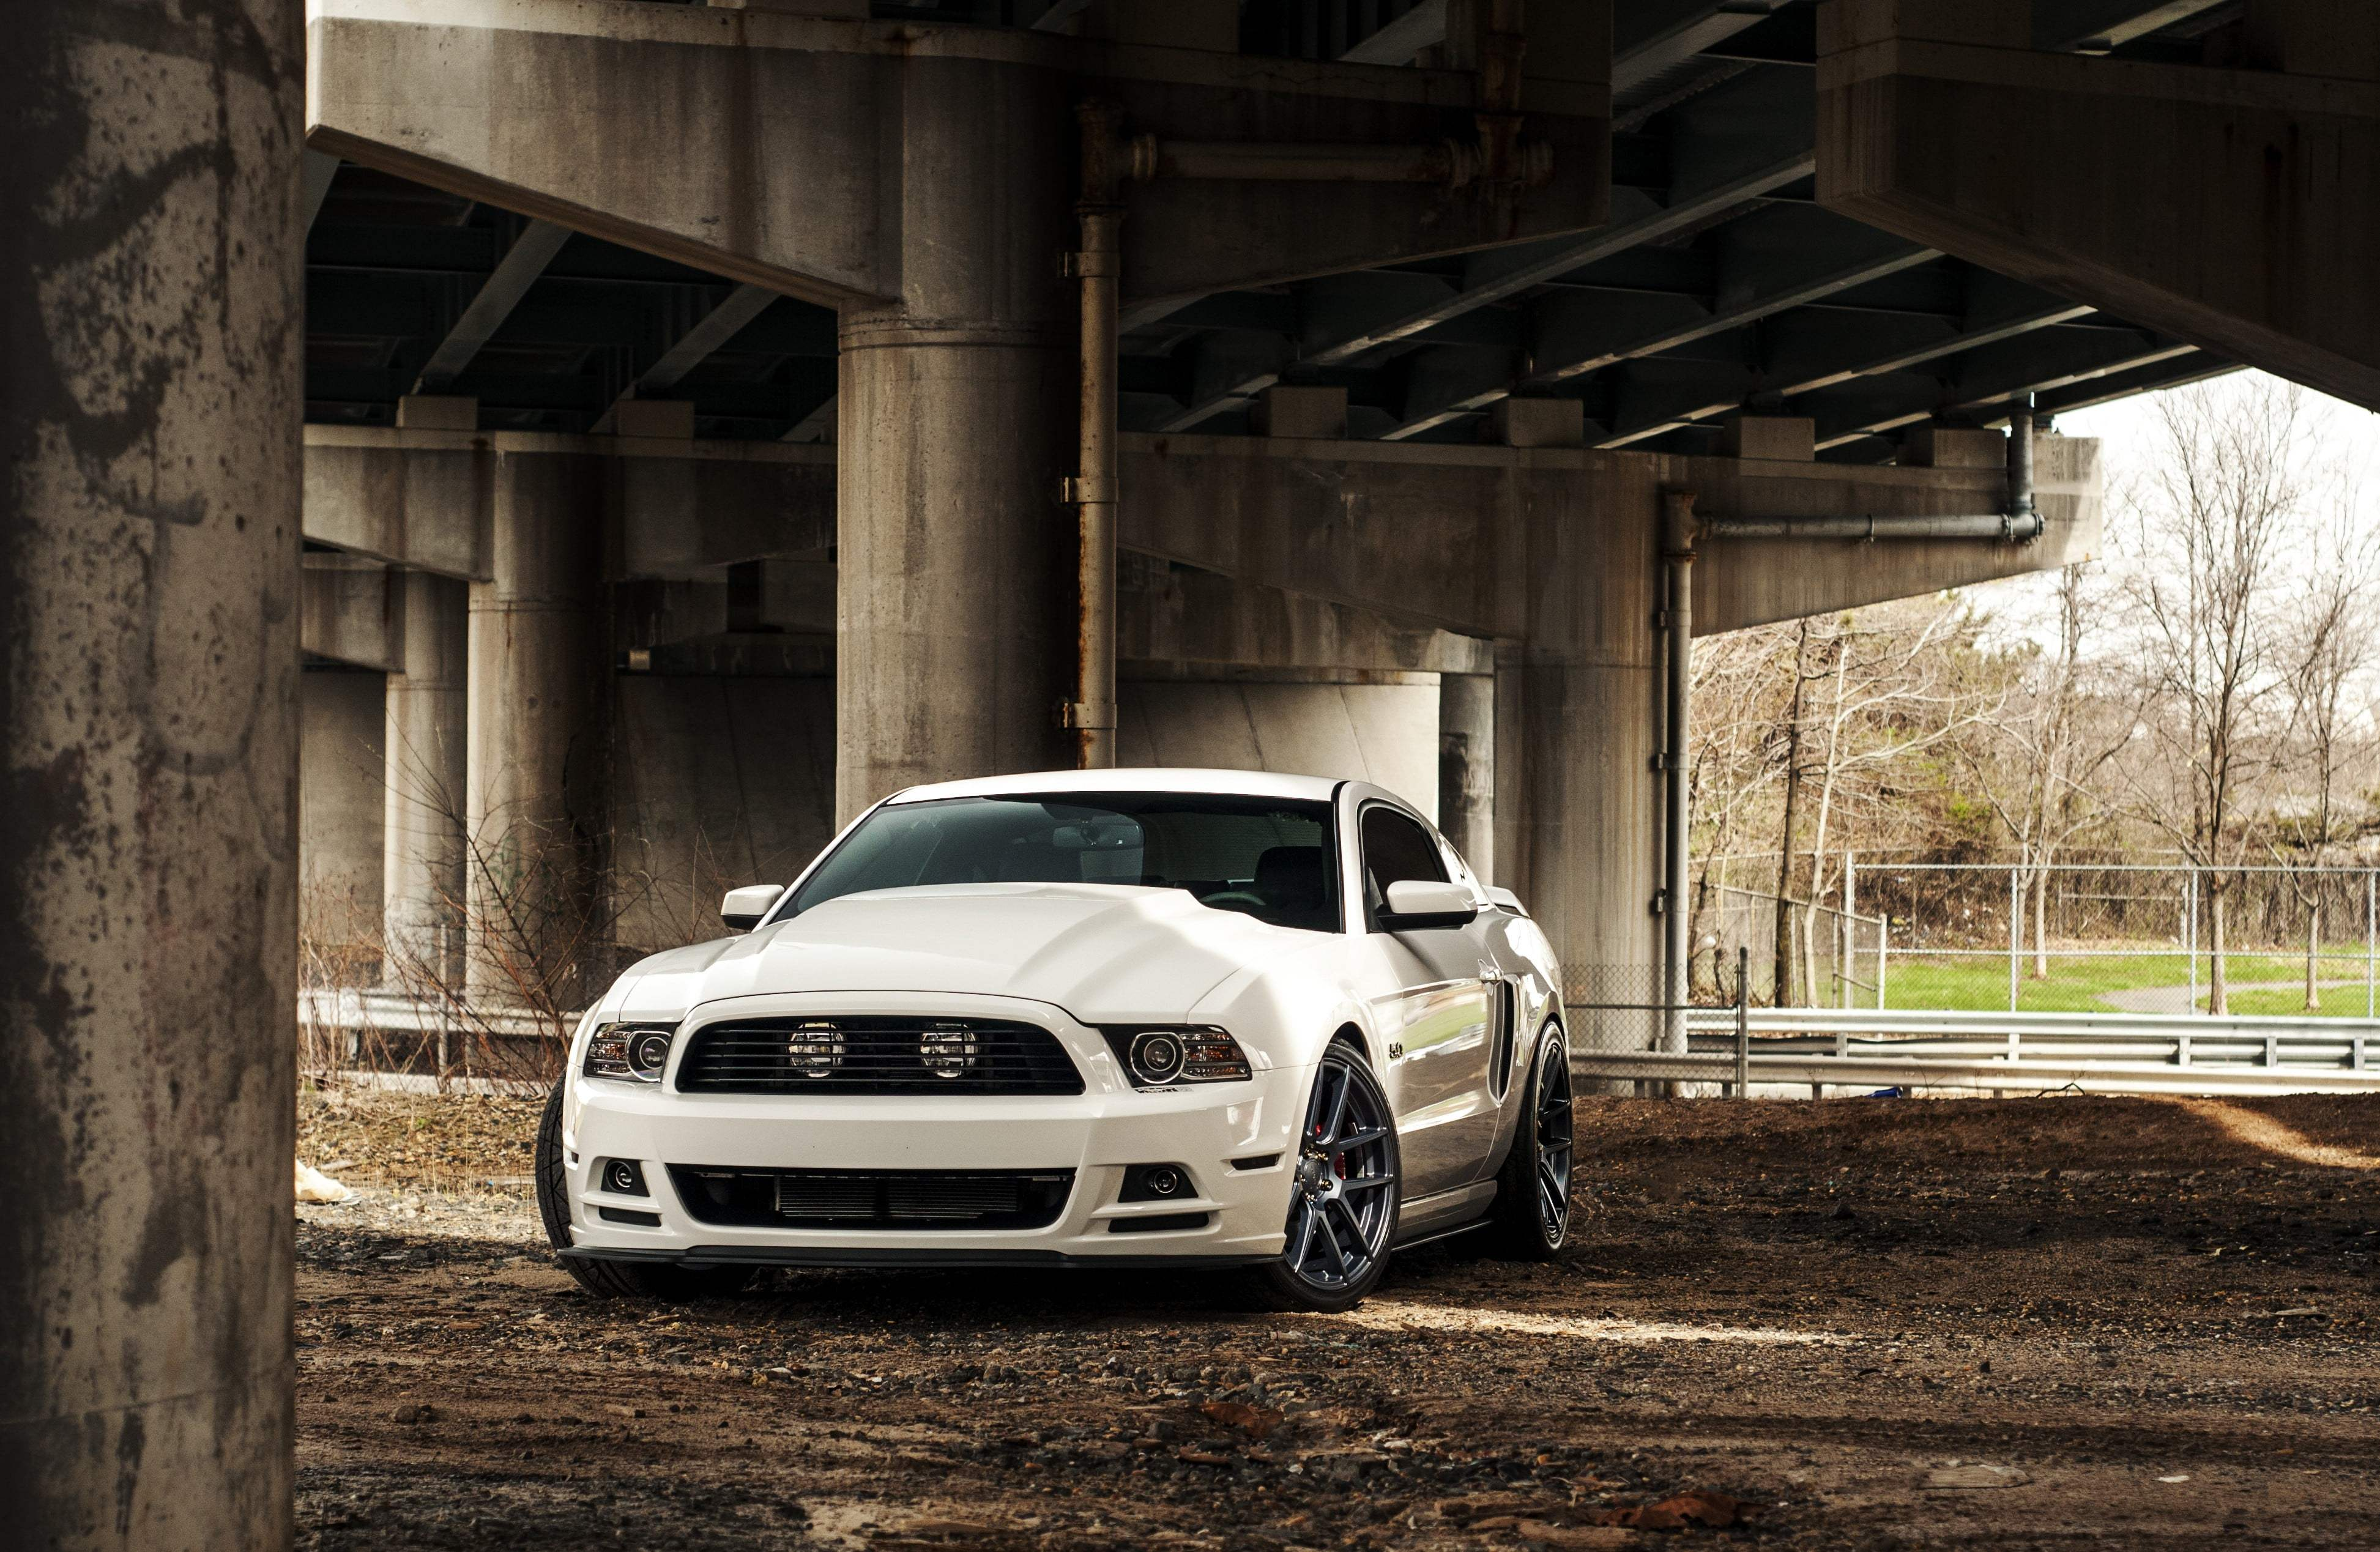 white ford mustang 4k 1602408459 - White Ford Mustang 4k - White Ford Mustang 4k wallpapers